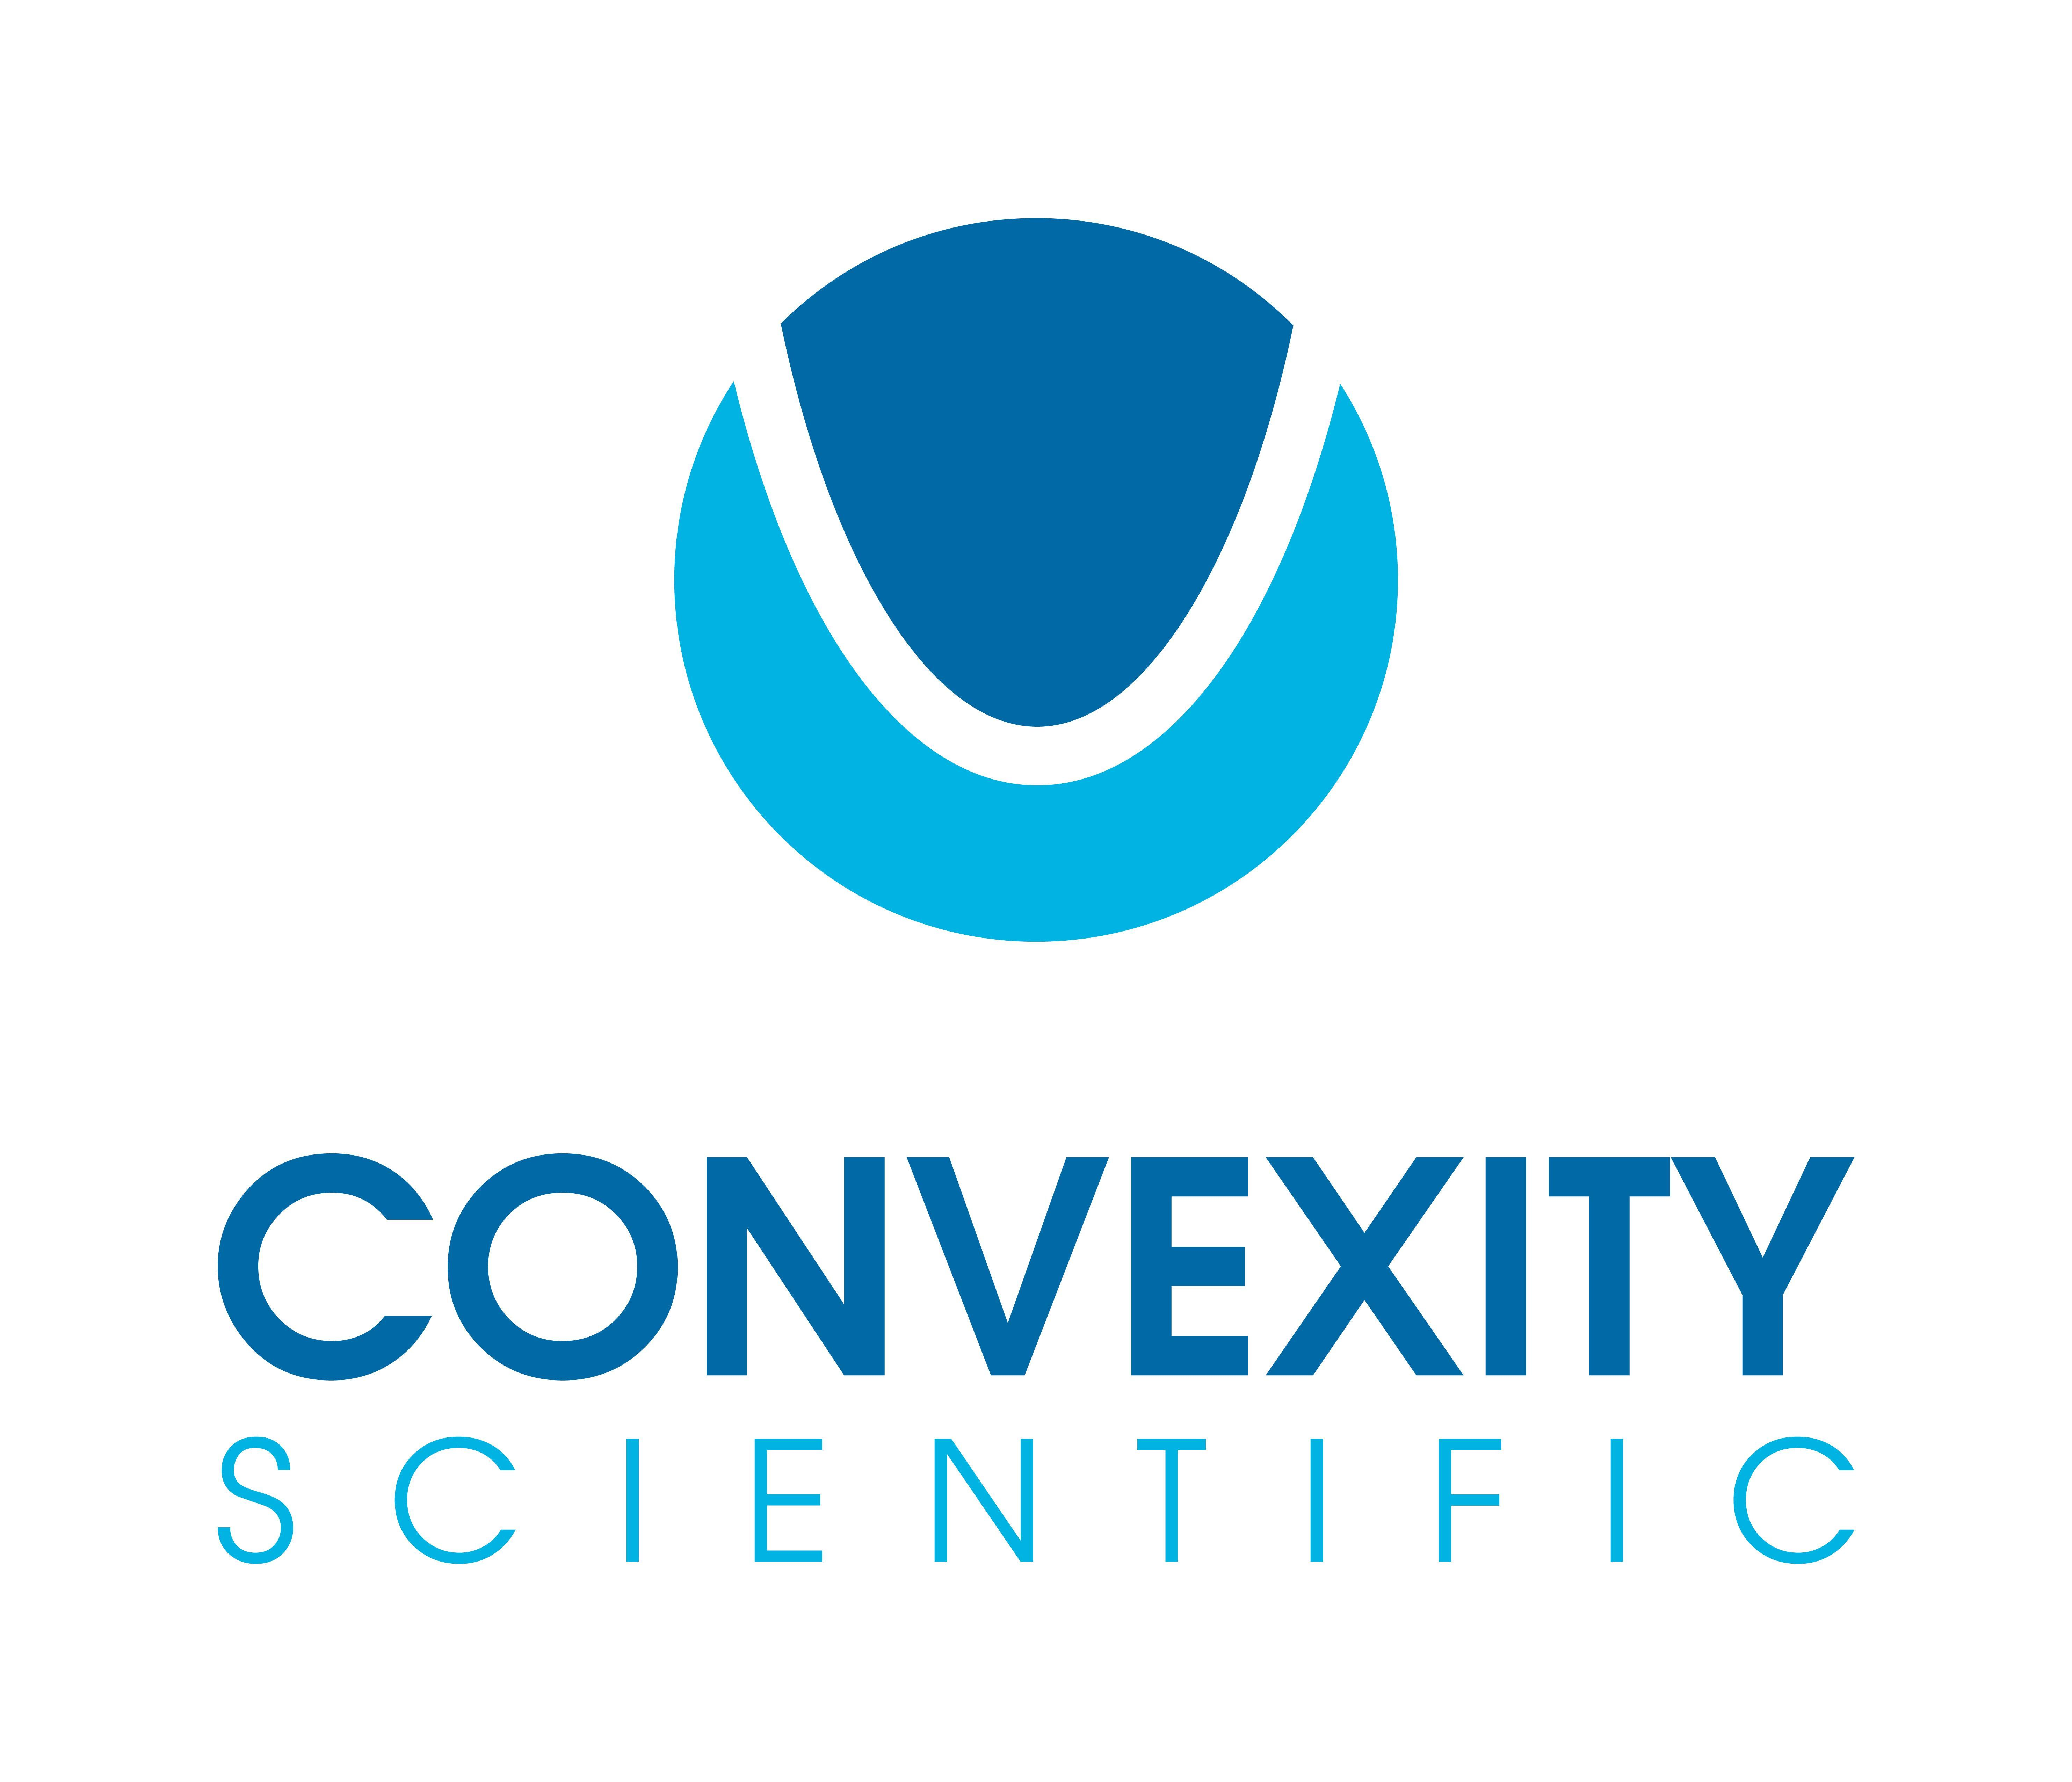 Logo of Convexity Scientific Inc